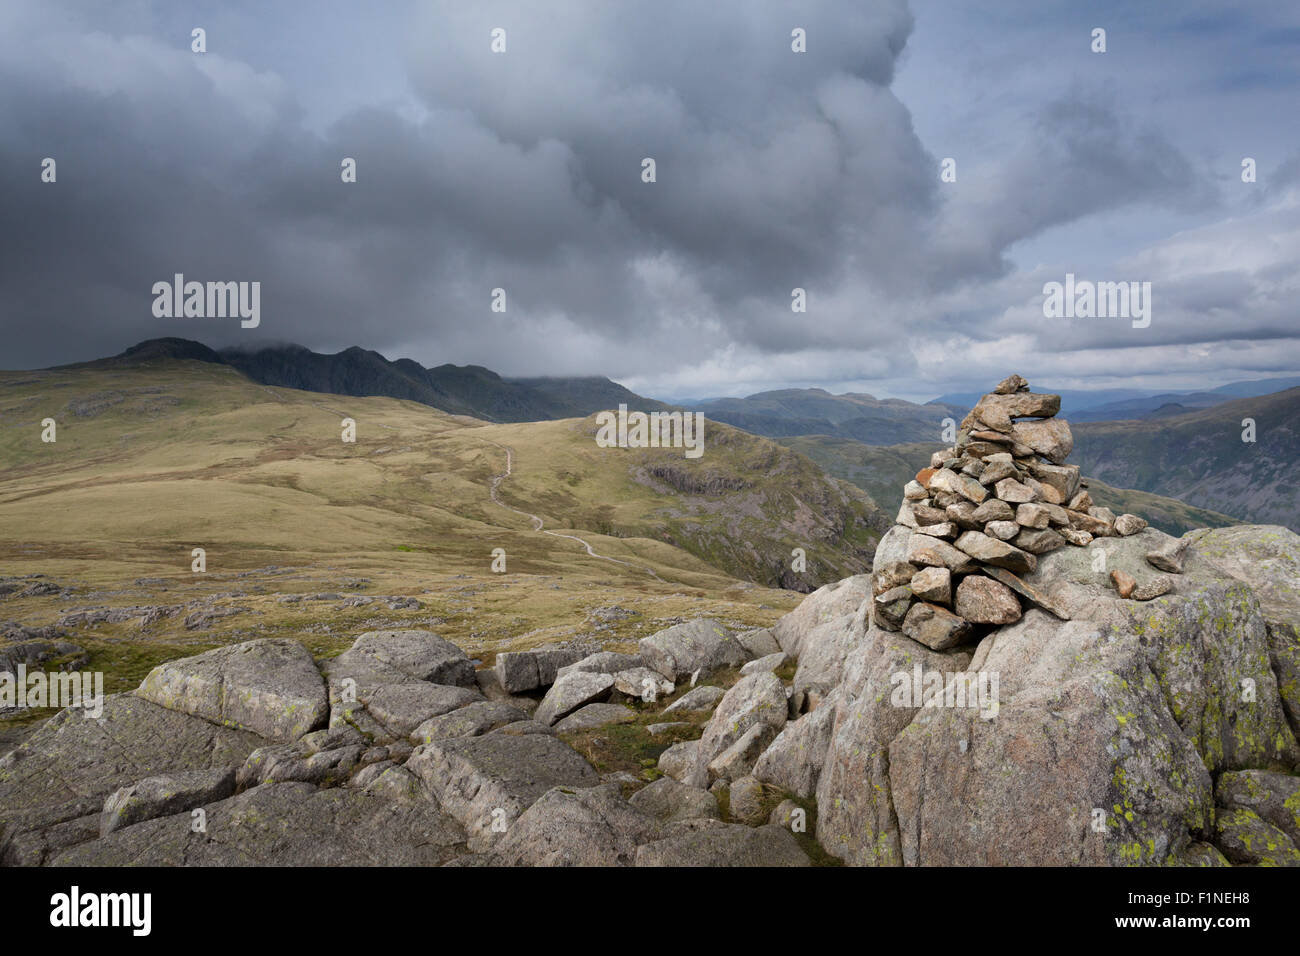 Cold Pike summit cairn looking across to the Crinkle Crags under a moody sky, in the English Lake District - Stock Image